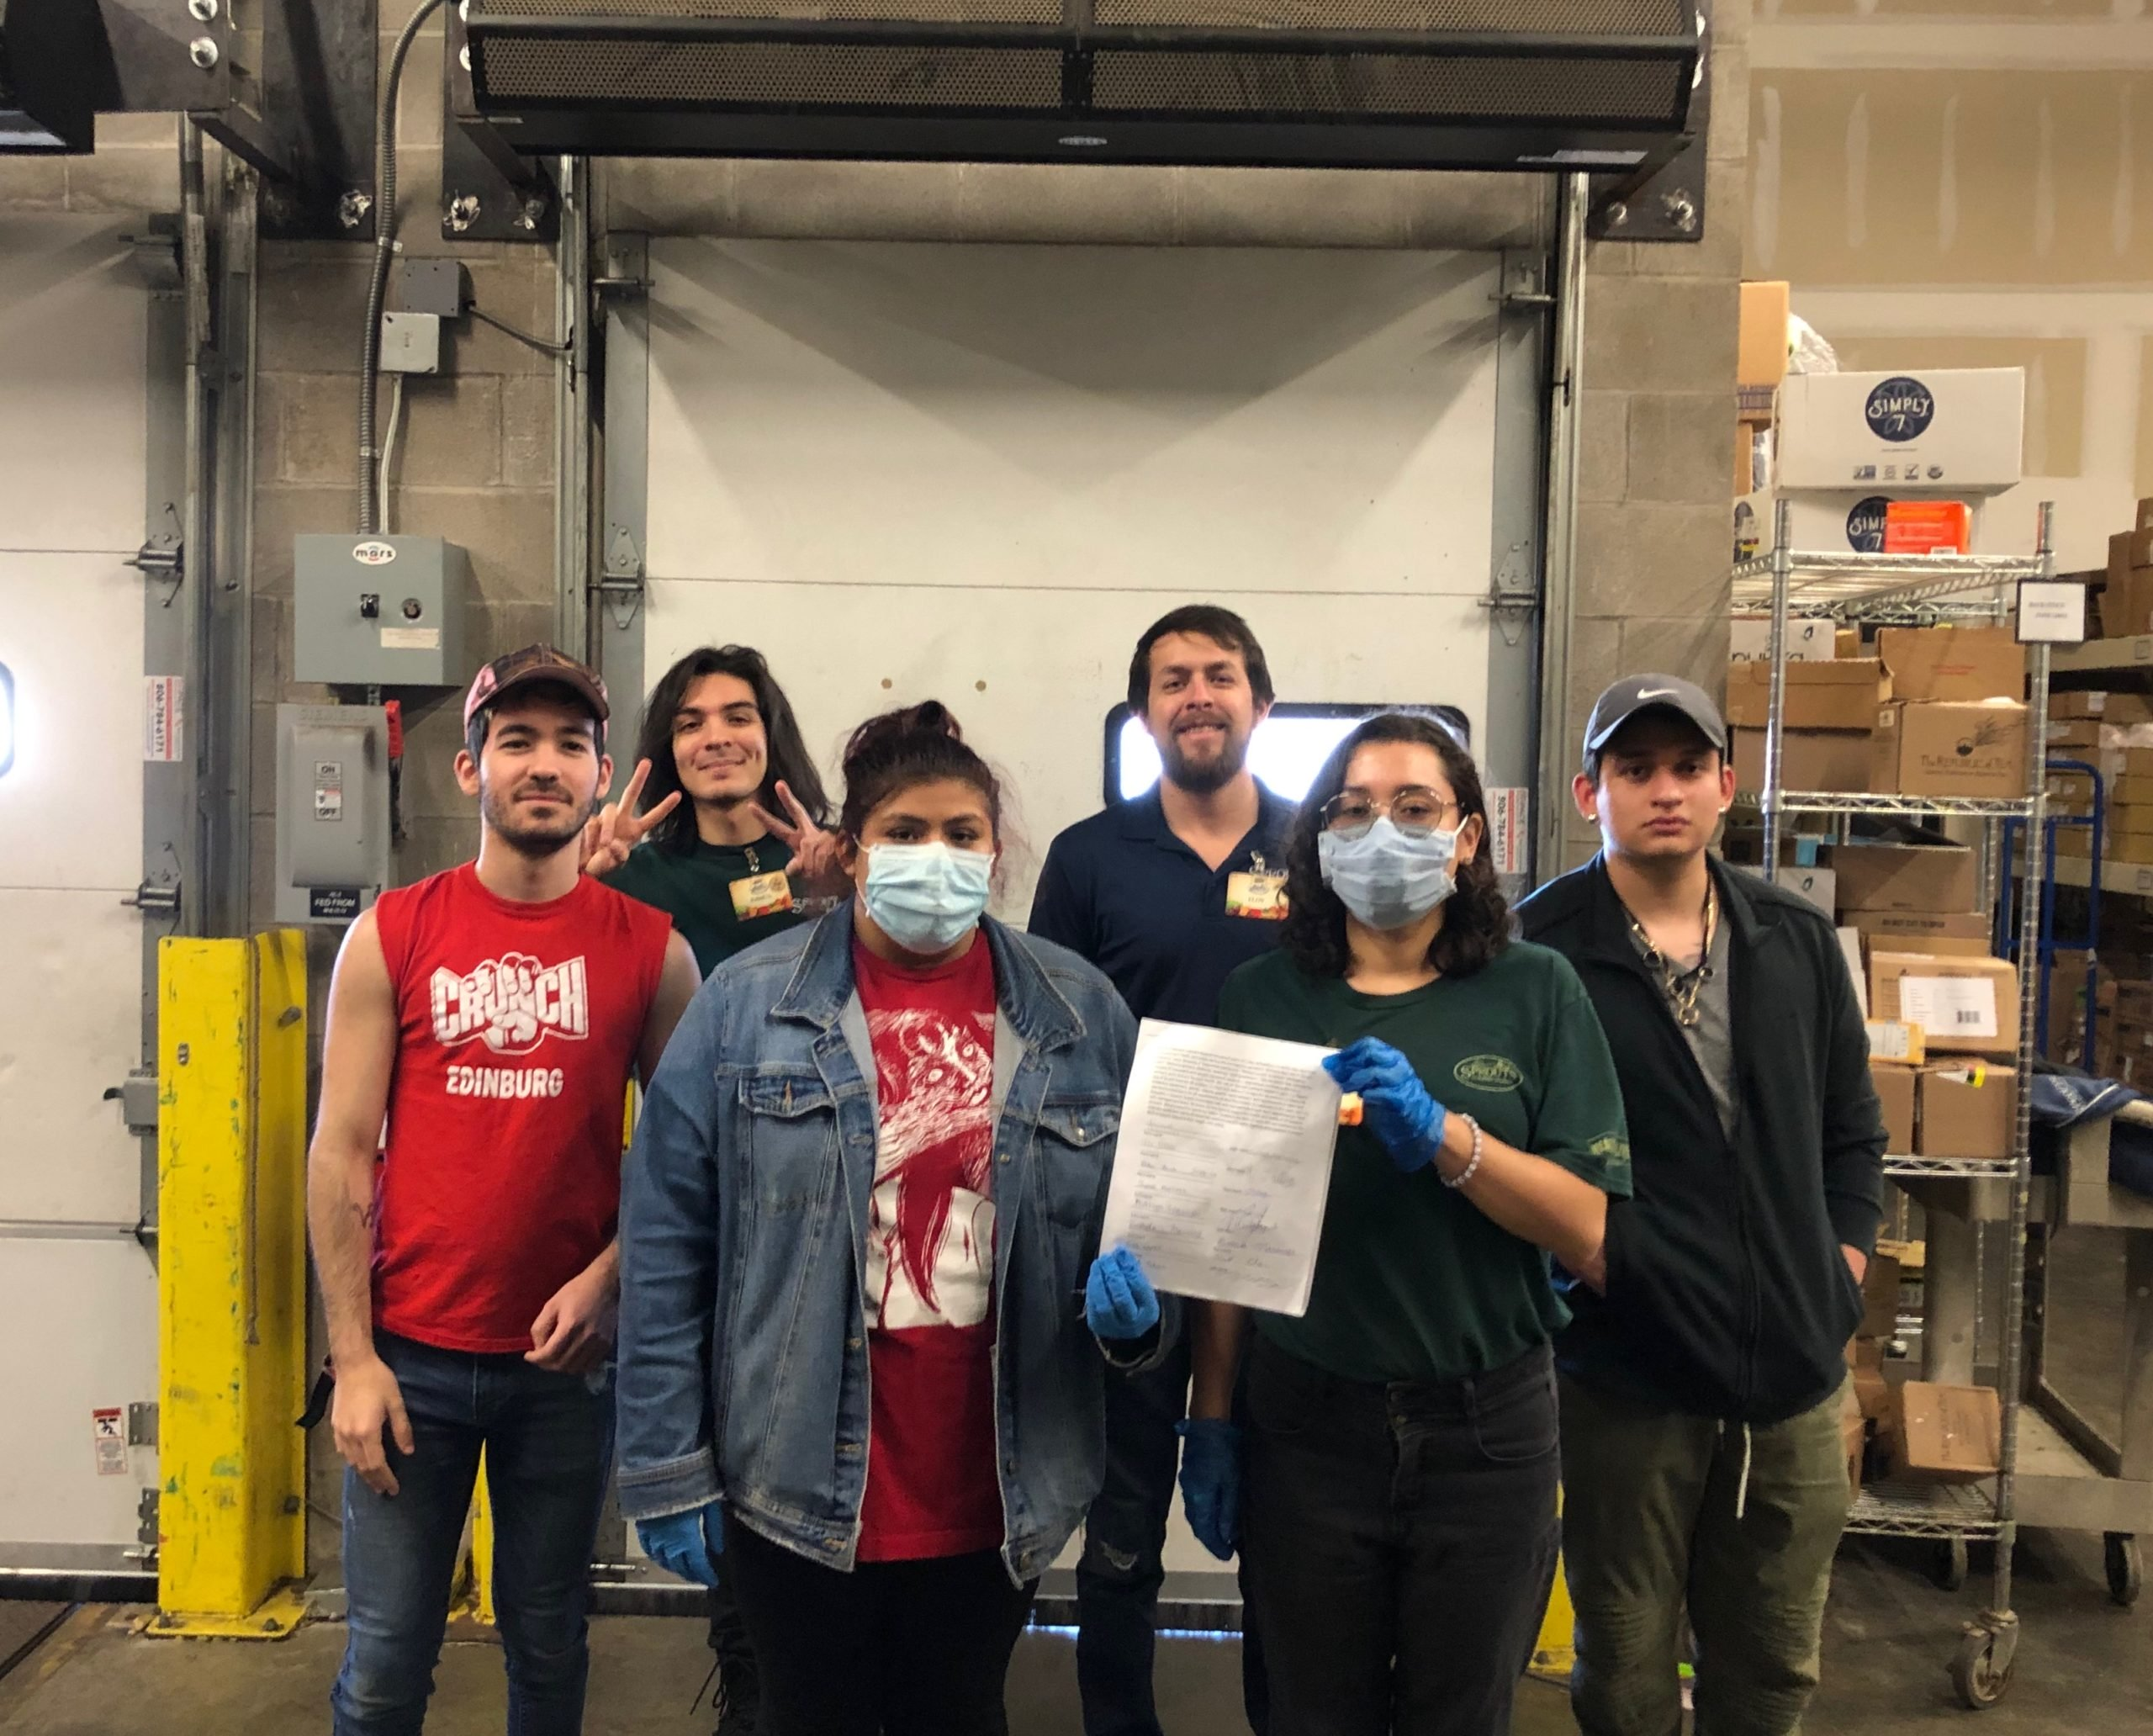 Sprouts coworkers in McAllen, Texas hold list of demands during COVID-19 crisis